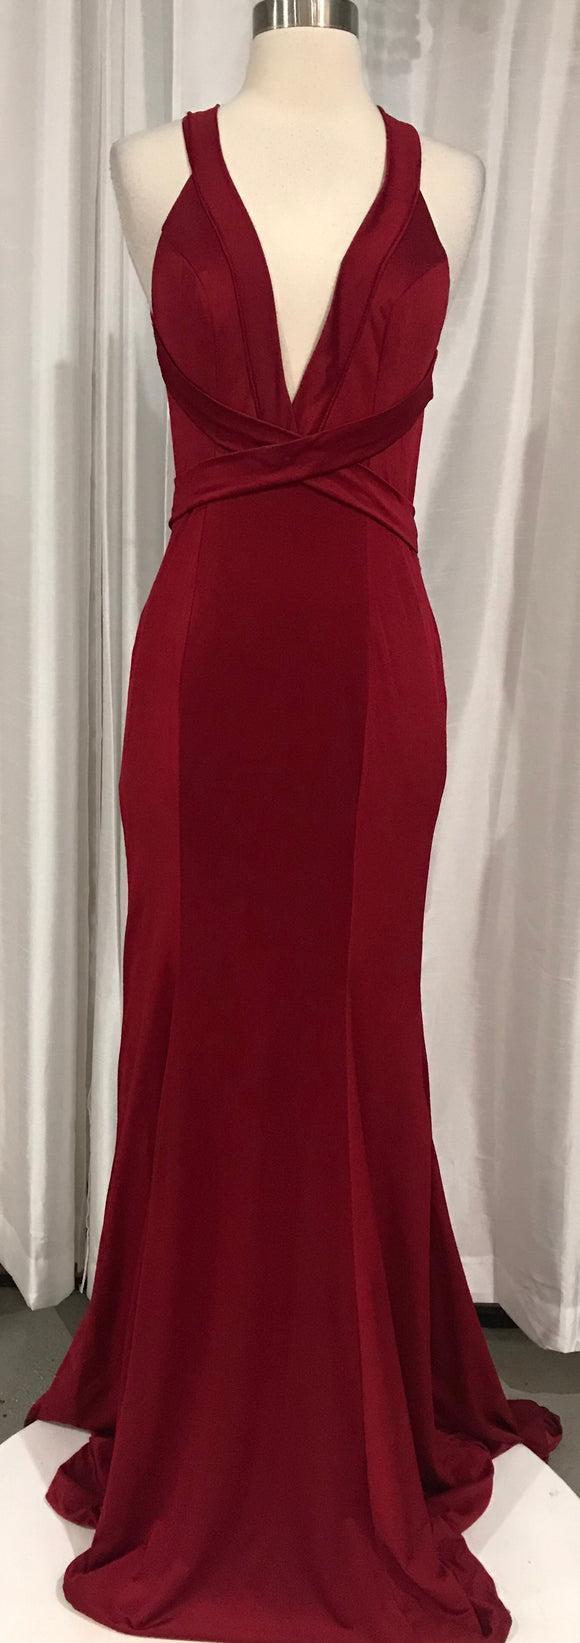 BOUTIQUE Red Strappy Gown Size Small